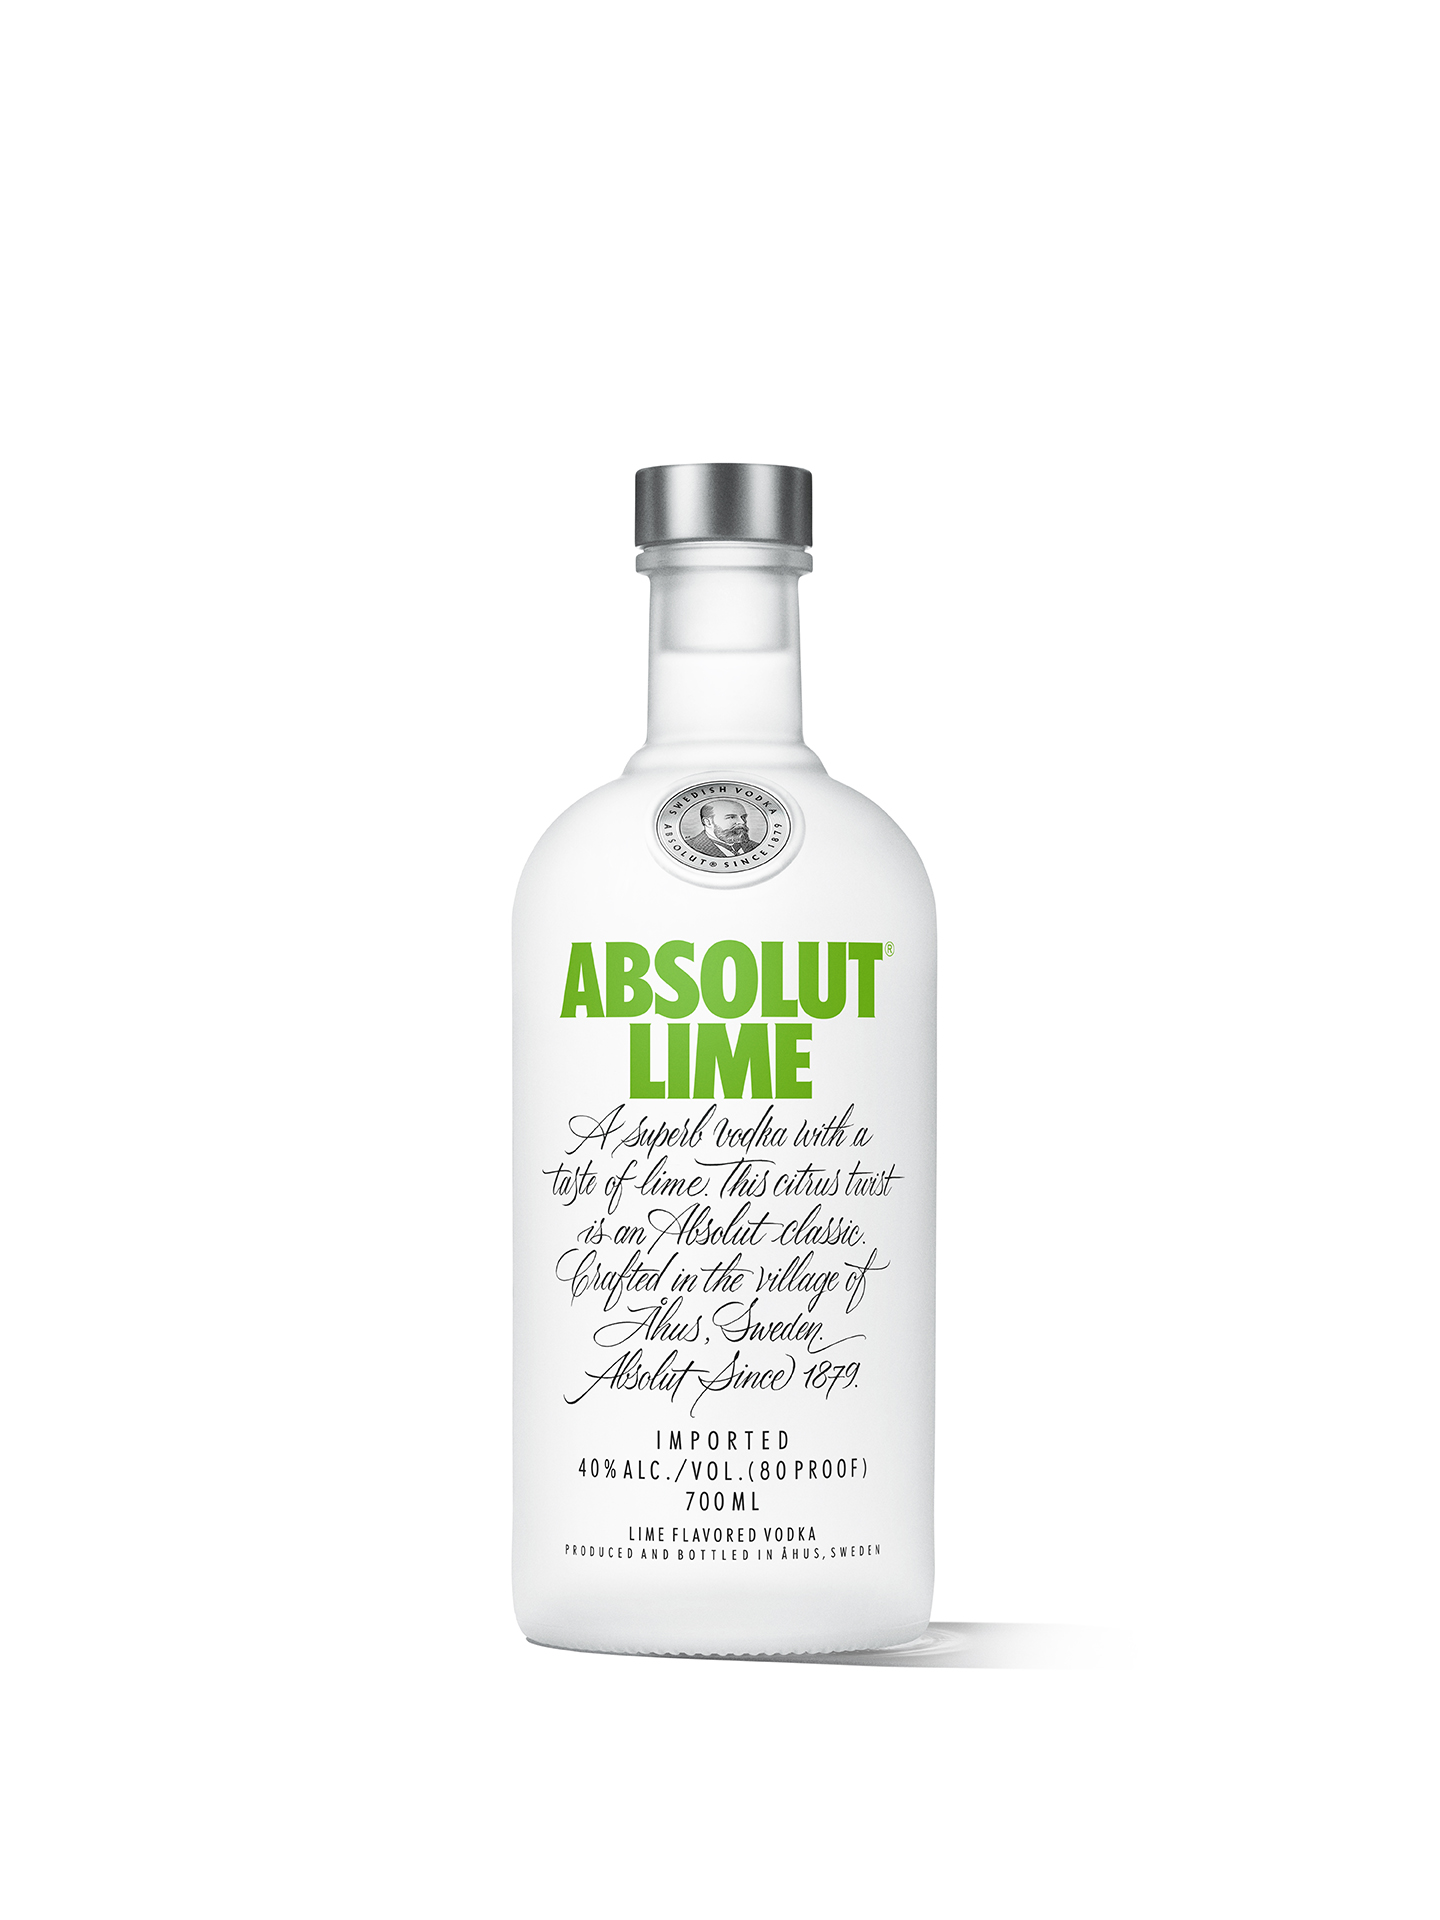 Absolut Brings A Fresh Citrus Twist To The Flavoured Vodka